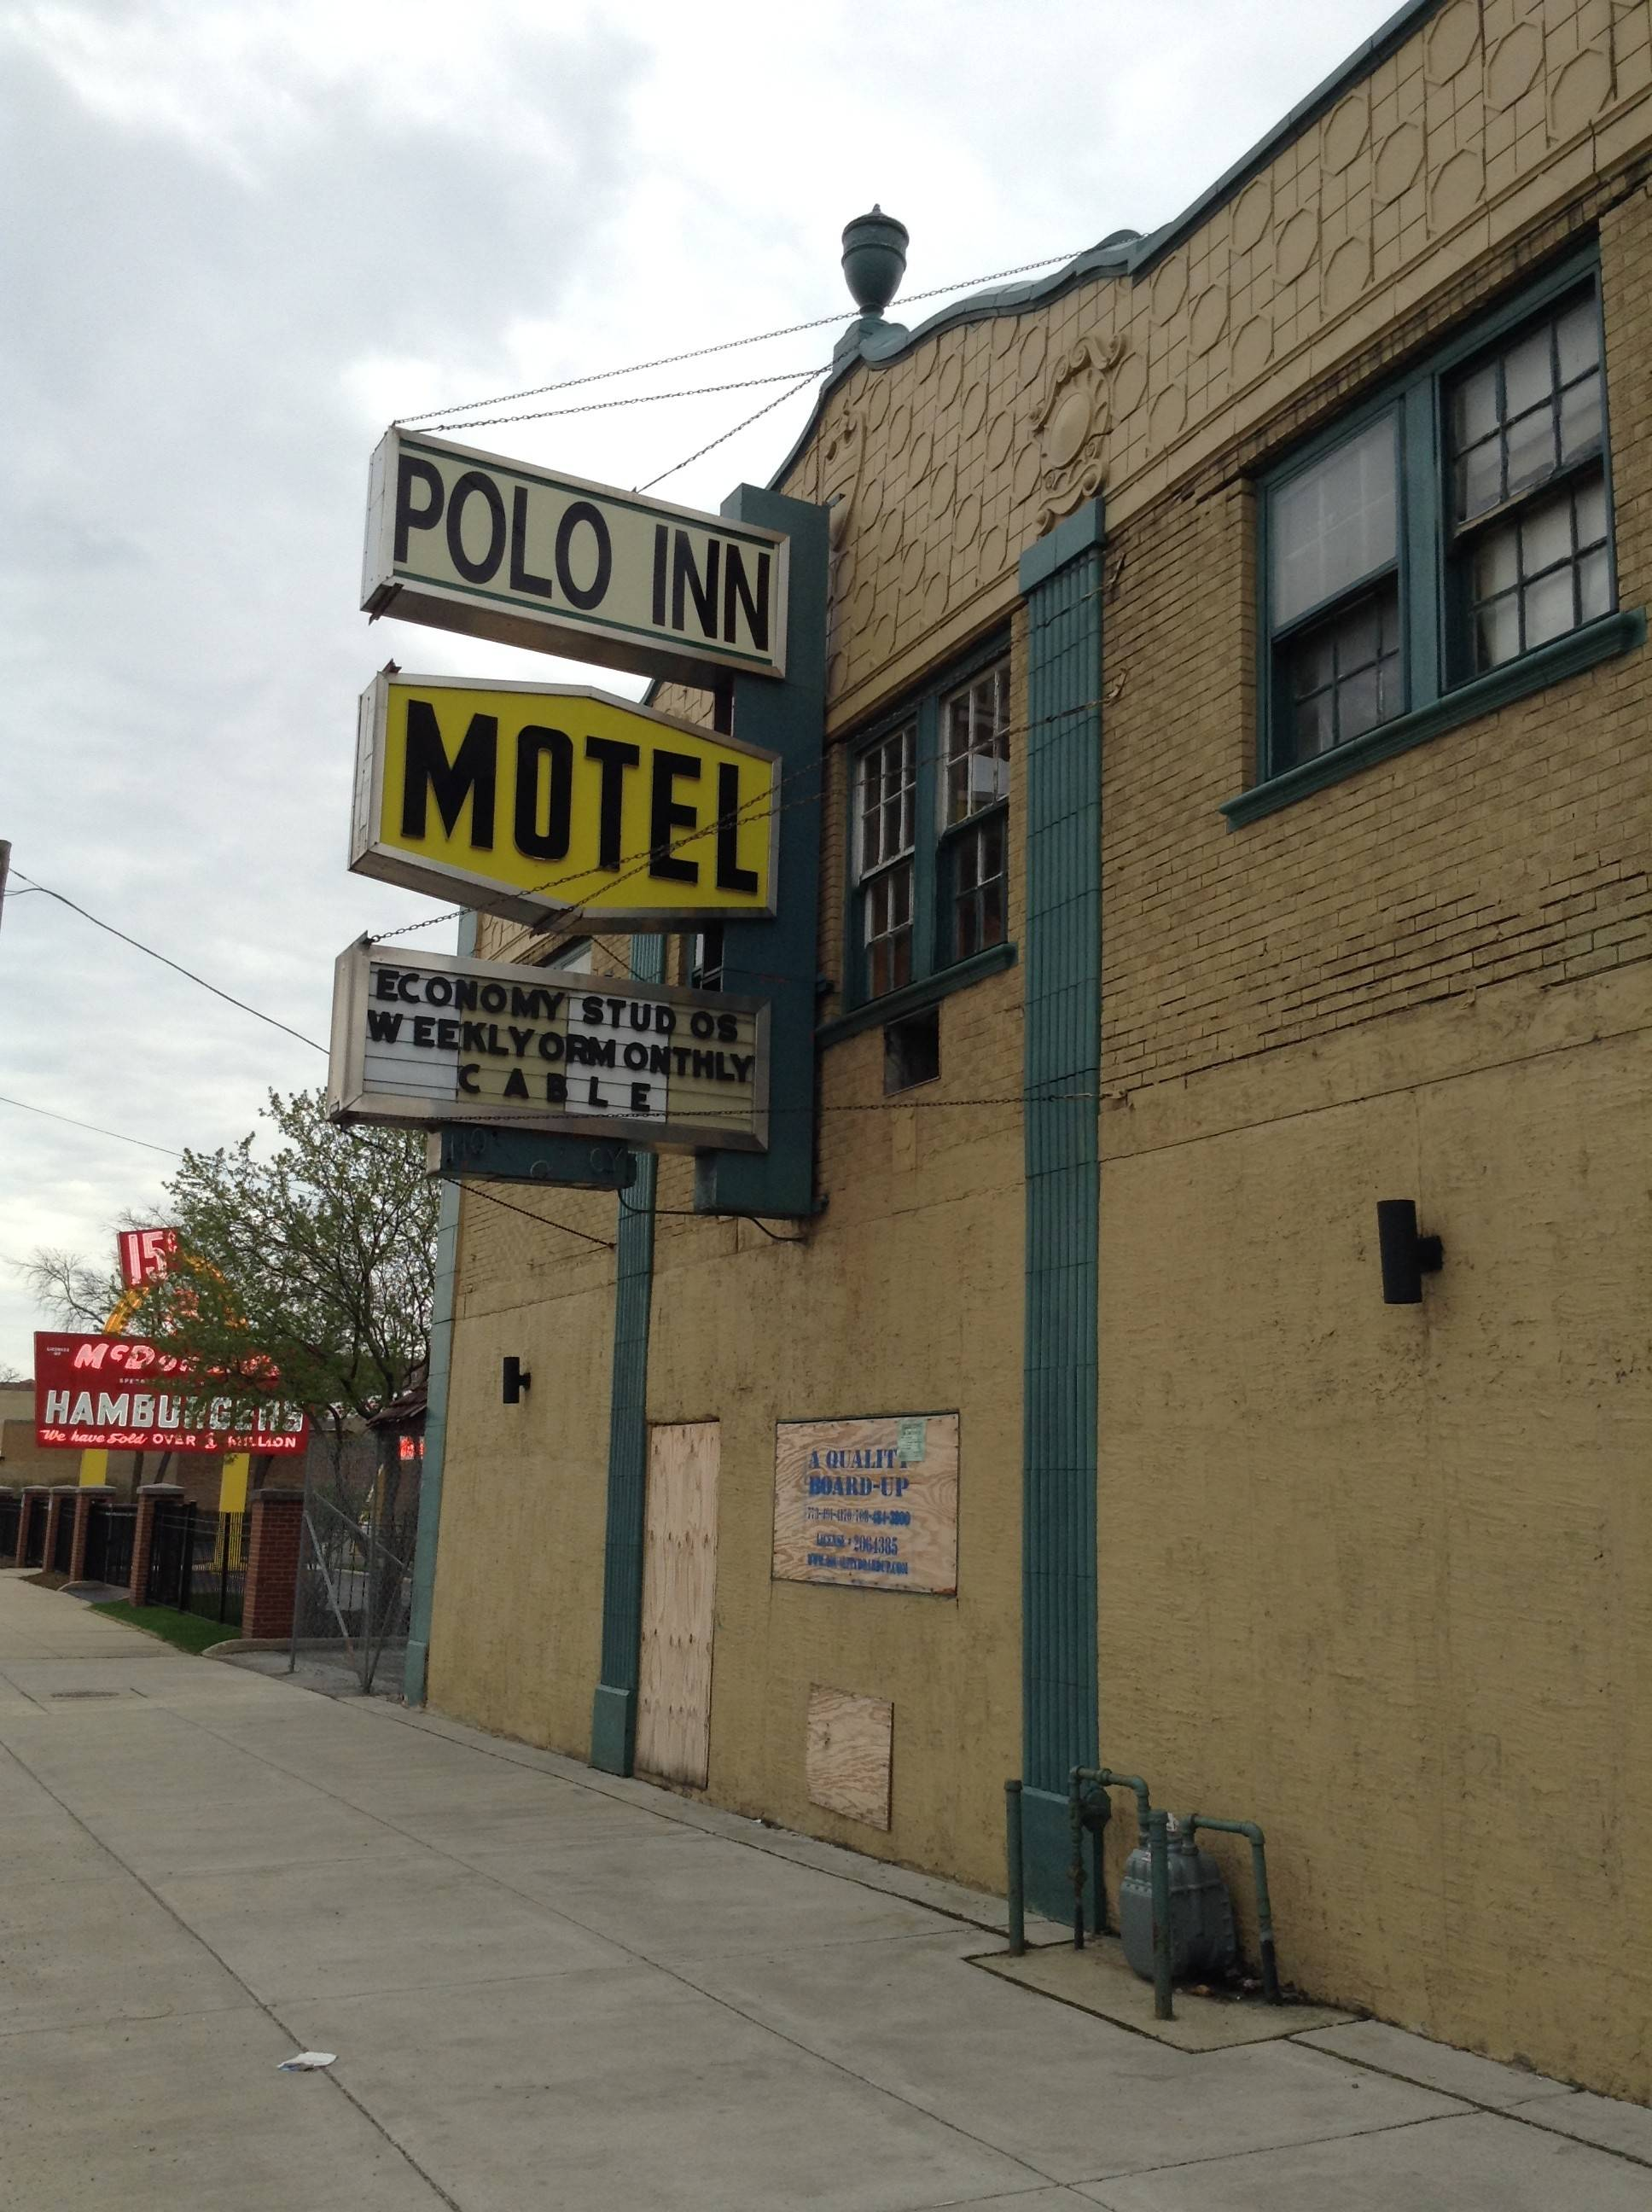 The shuttered Polo Inn motel in Des Plaines will likely be demolished to make space for a commercial or mixed use development, which some builders have suggested could include the neighboring site of the McDonald's Museum.